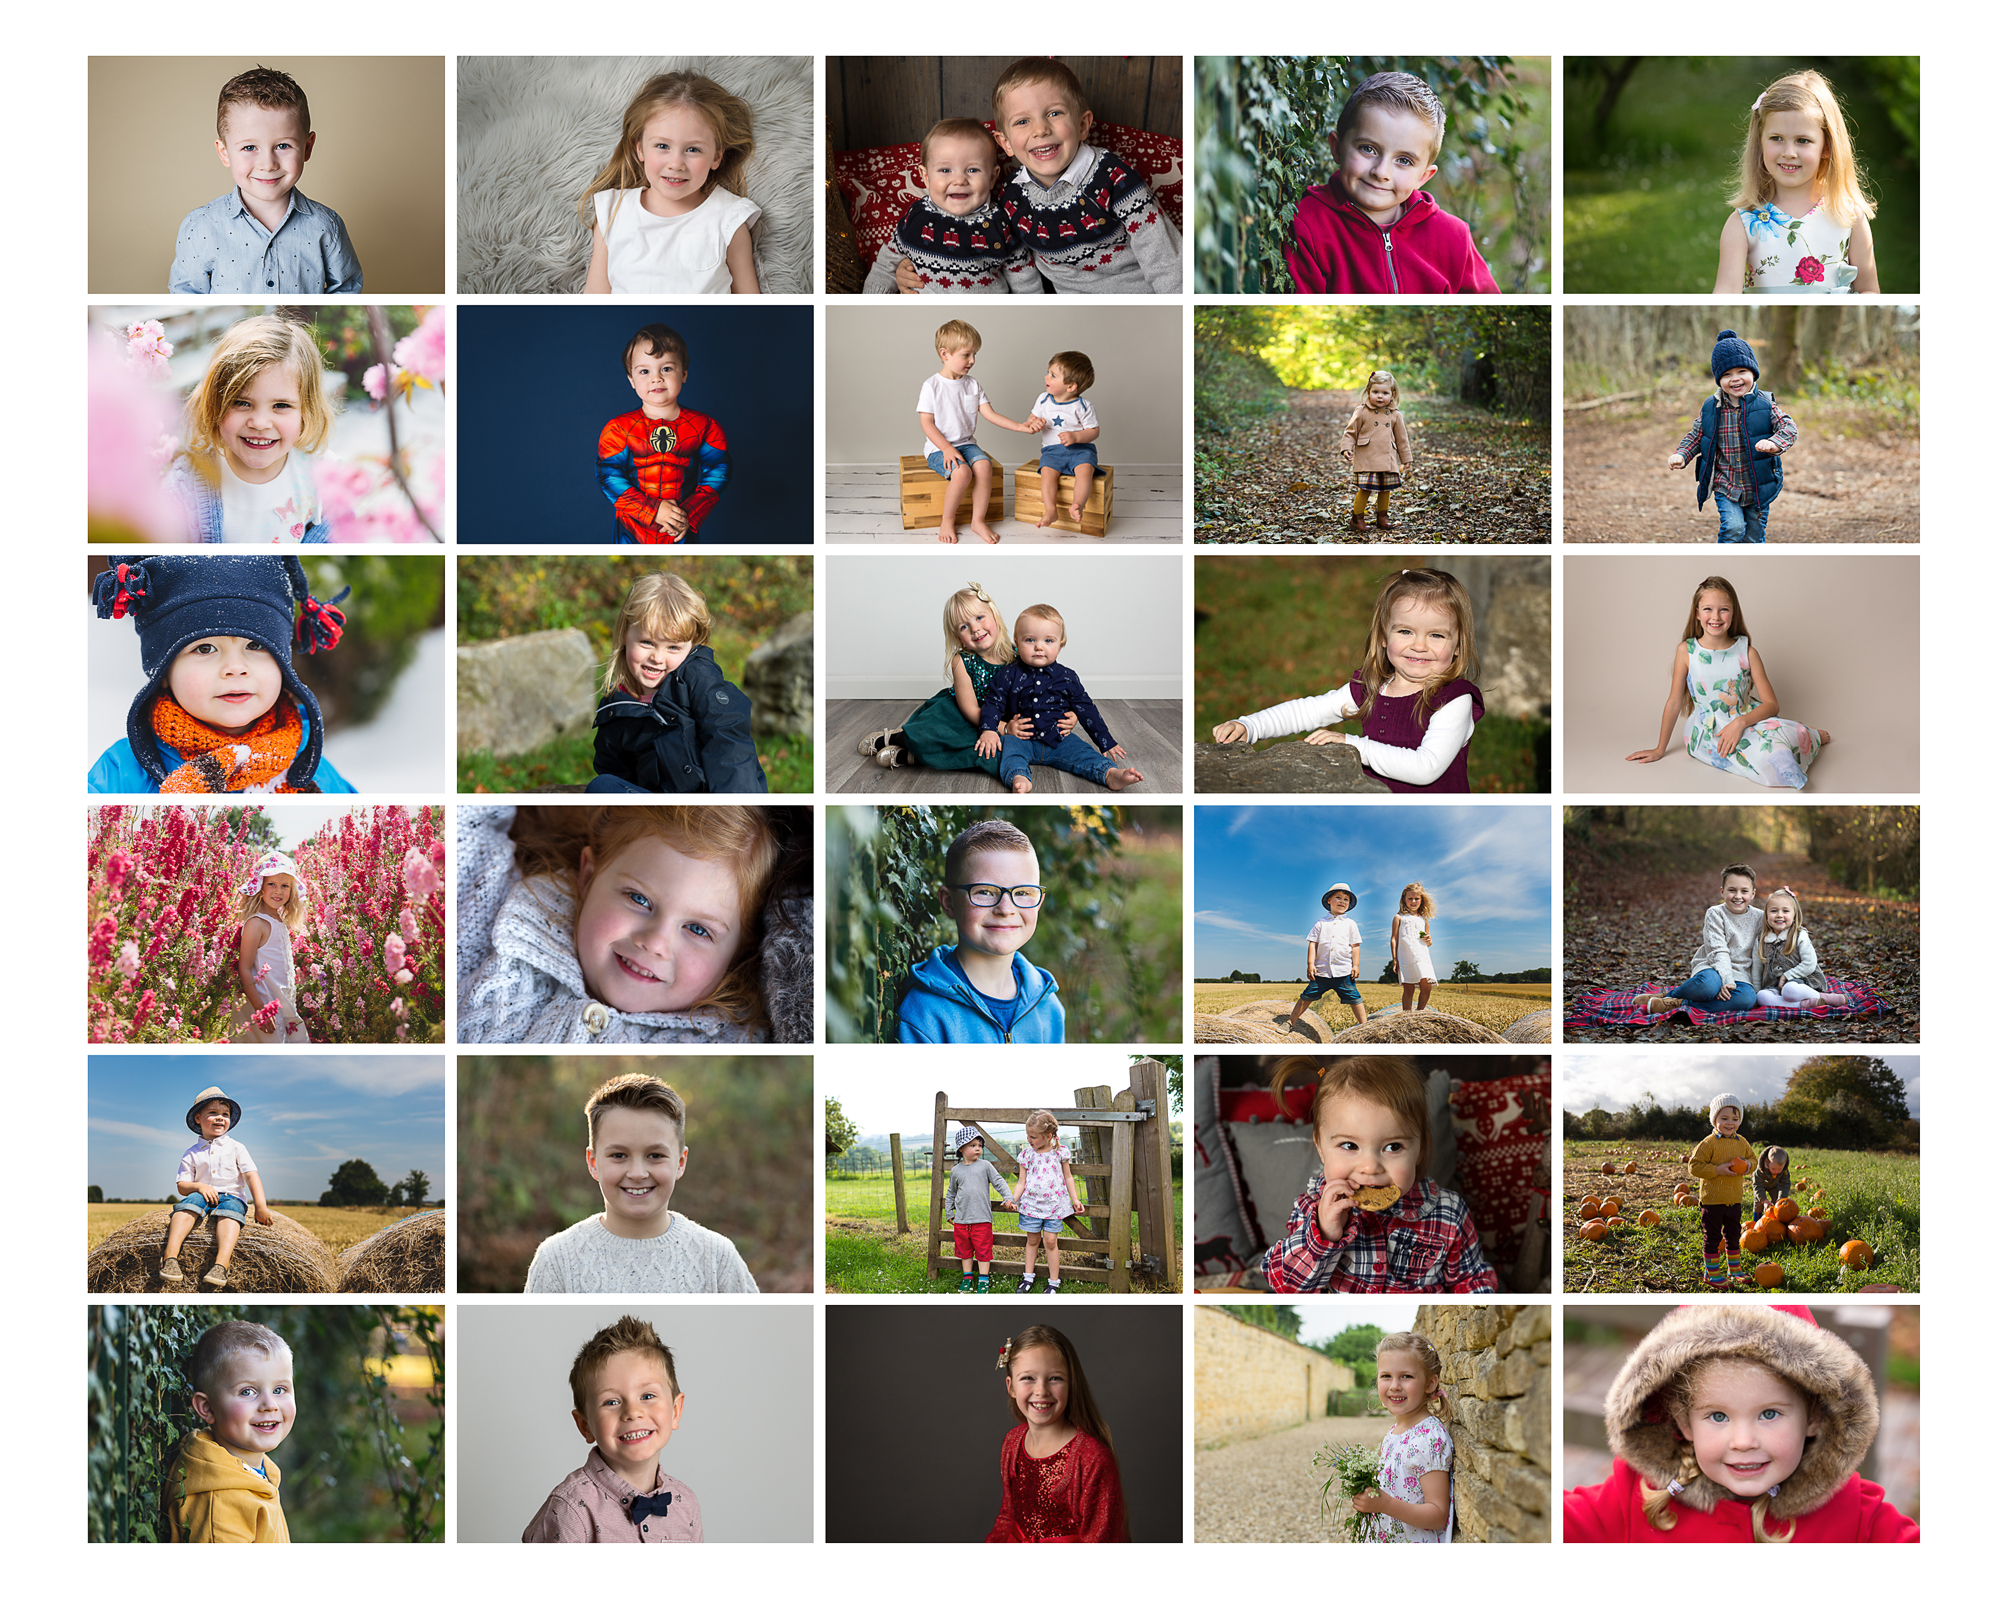 Family / Children's photographer South Wales near Cardiff, based in Caerphilly